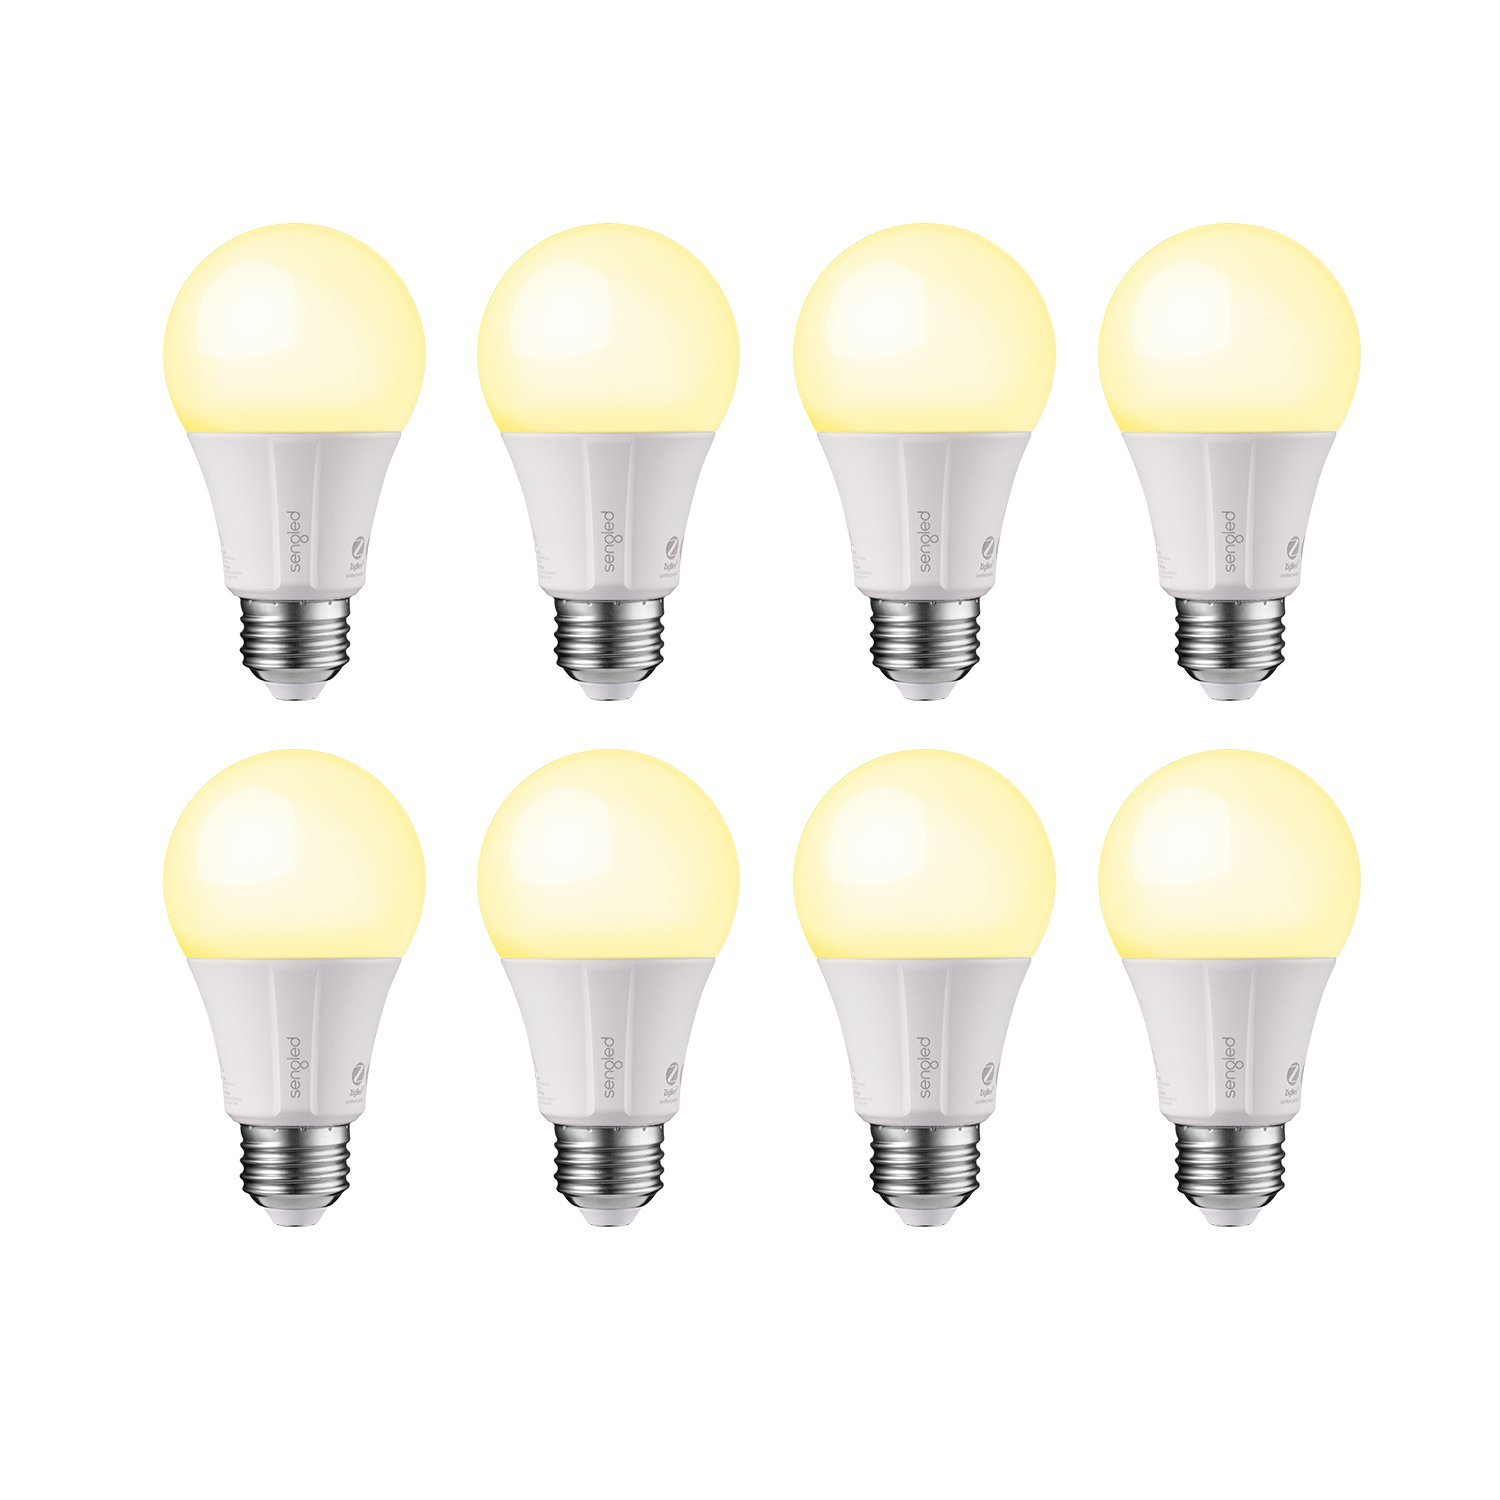 Sengled Element Dimmable Smart Light Bulbs A19 Zigbee Bulb